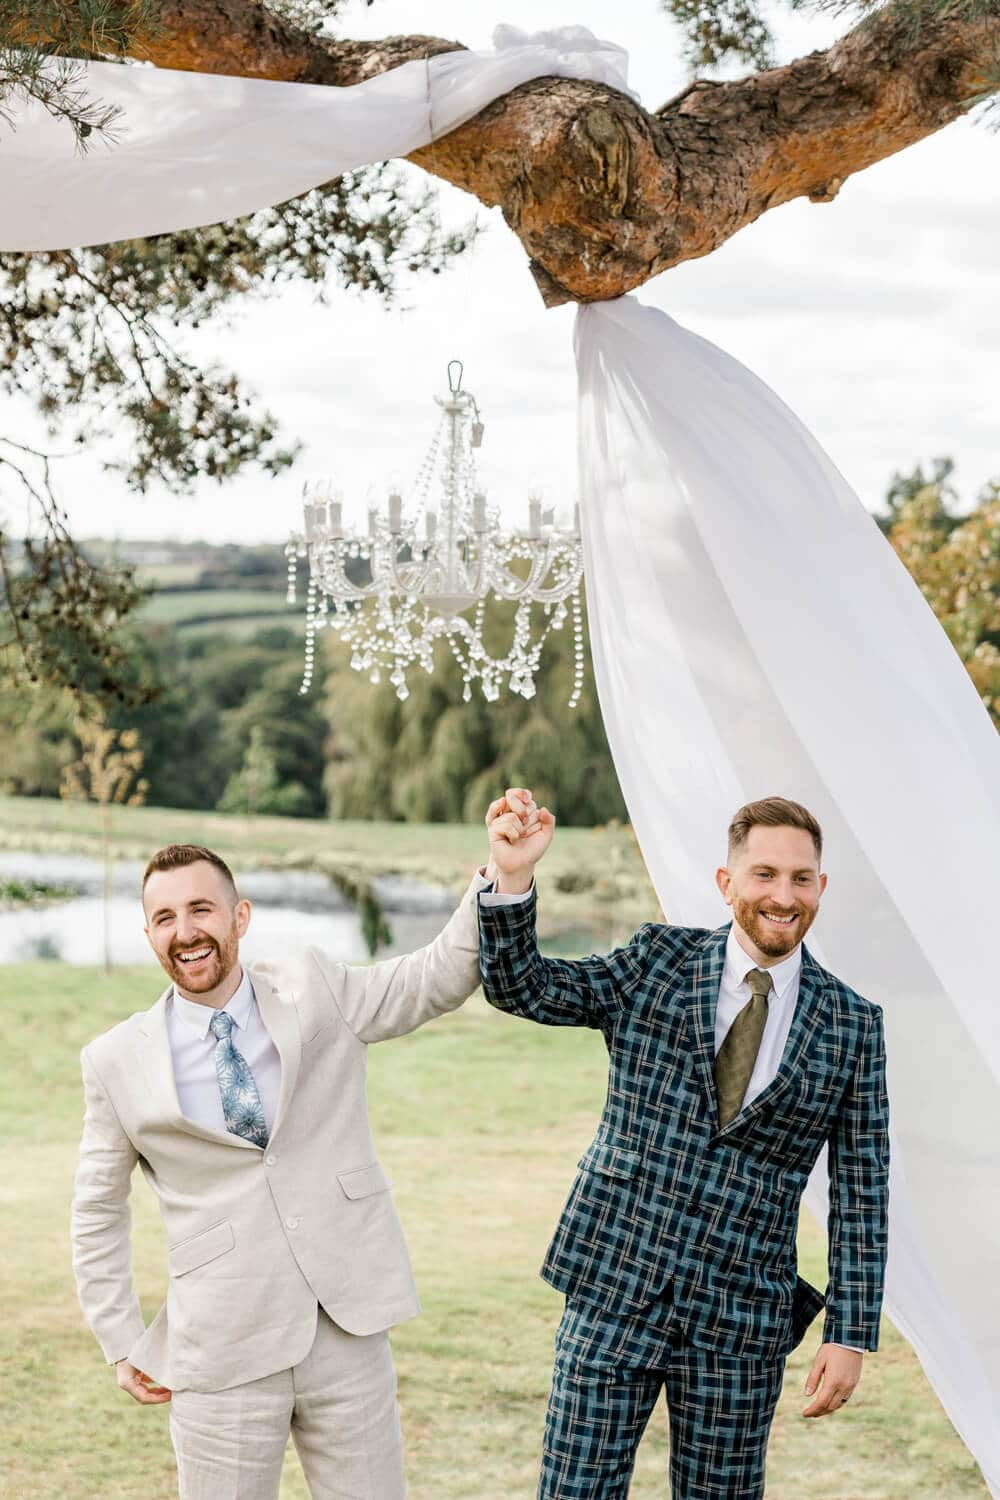 Greentrees Estate  wedding ceremony for same sex couple in Haywards Heath